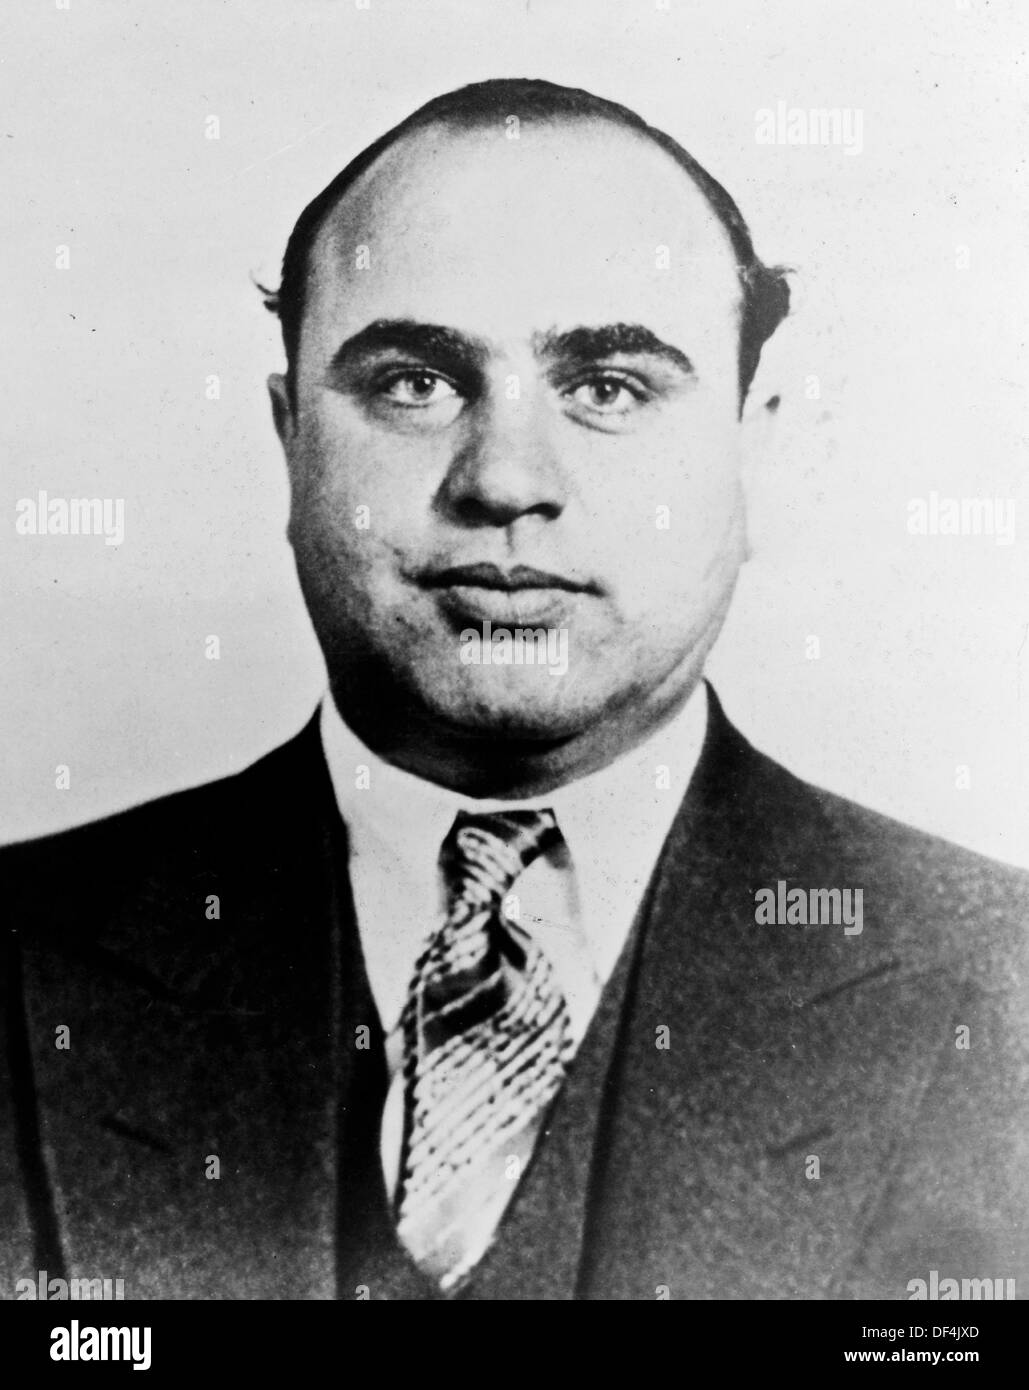 Al Capone Gangster Stock Photos & Al Capone Gangster Stock Images ...